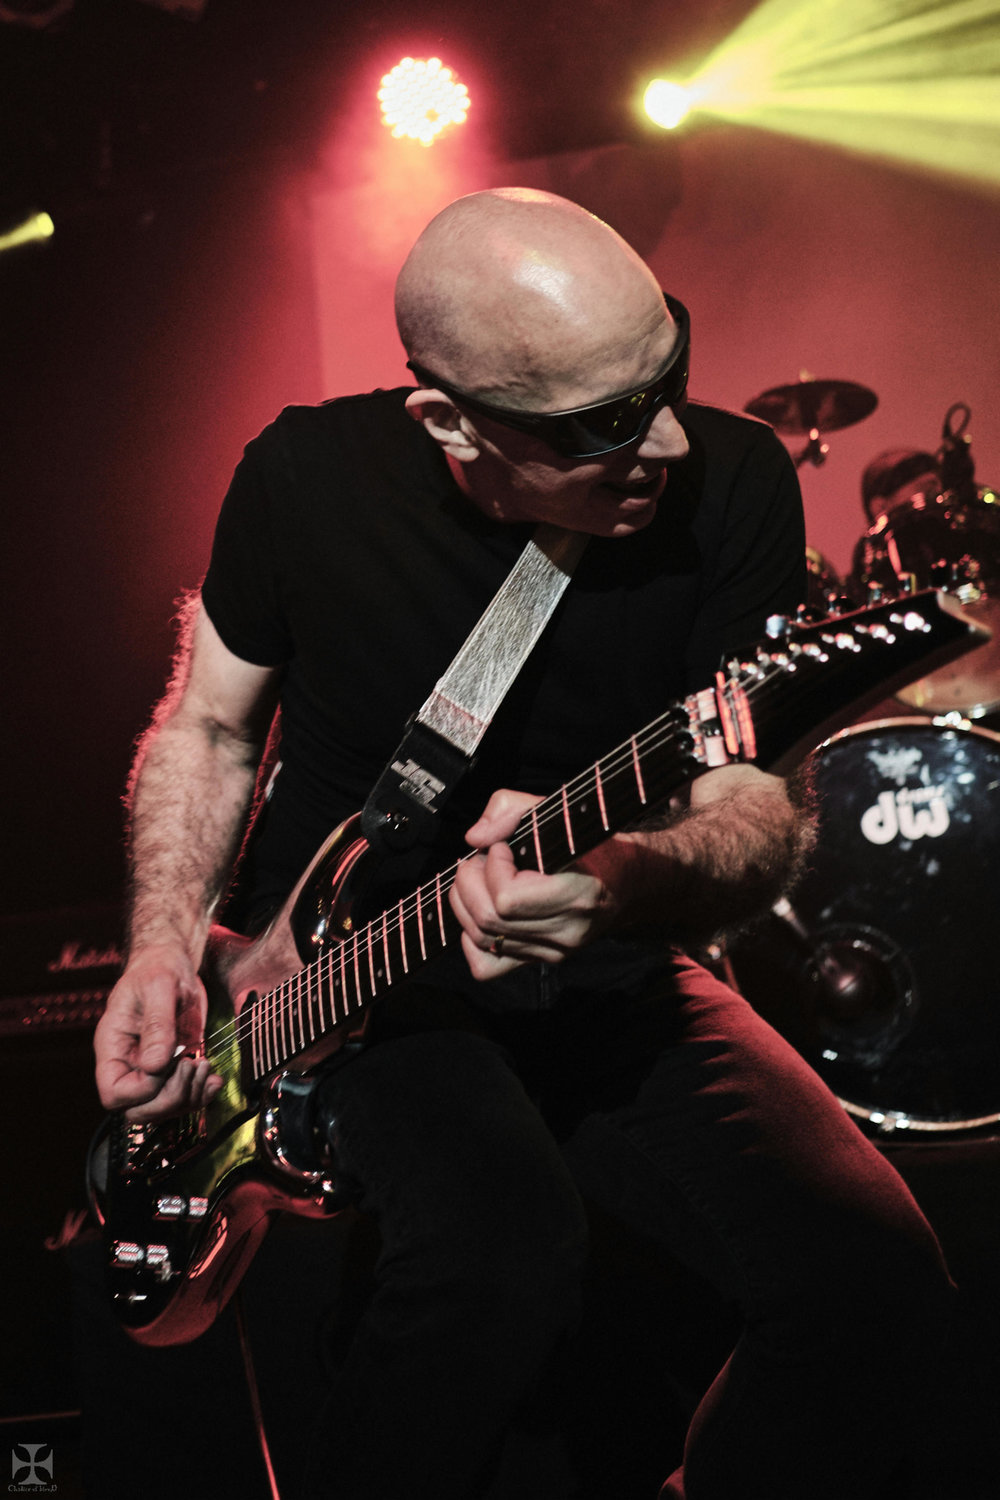 2018.12.04 Joe Satriani - DSC21472_branded.jpg